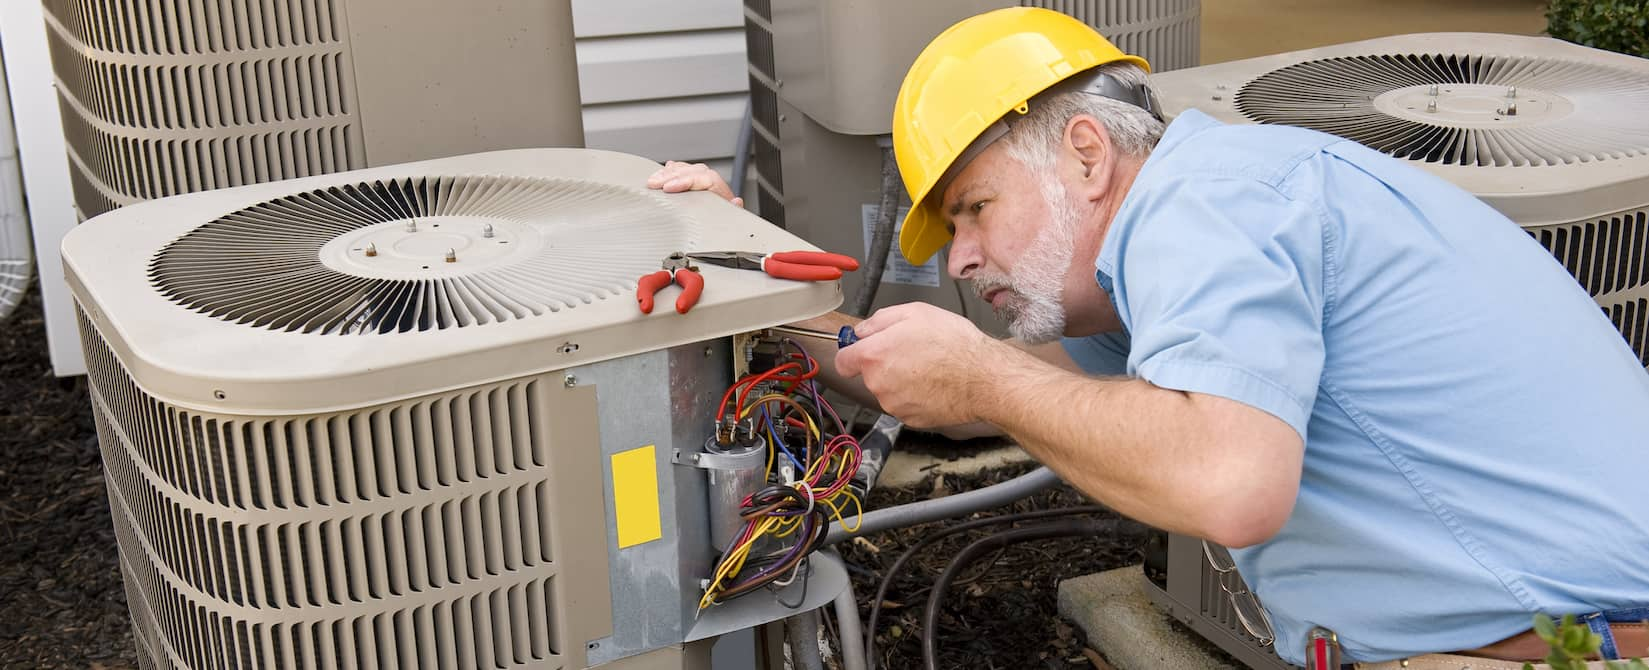 Kansas City Residential HVAC Technician